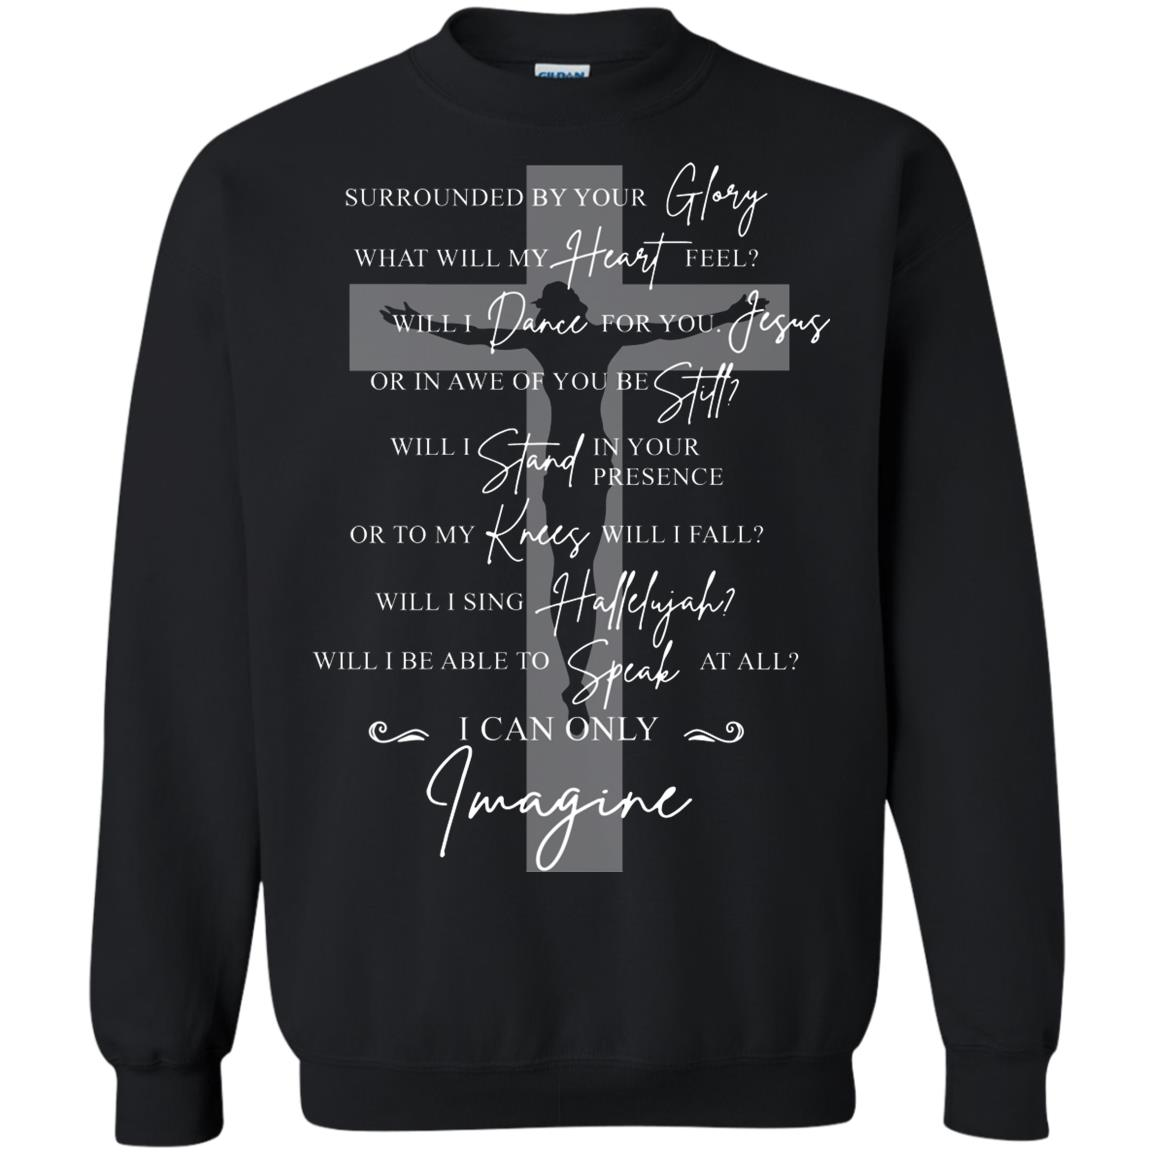 Jesus surrounded your glory what will my heart feel t shirt, tank top,  hoodie